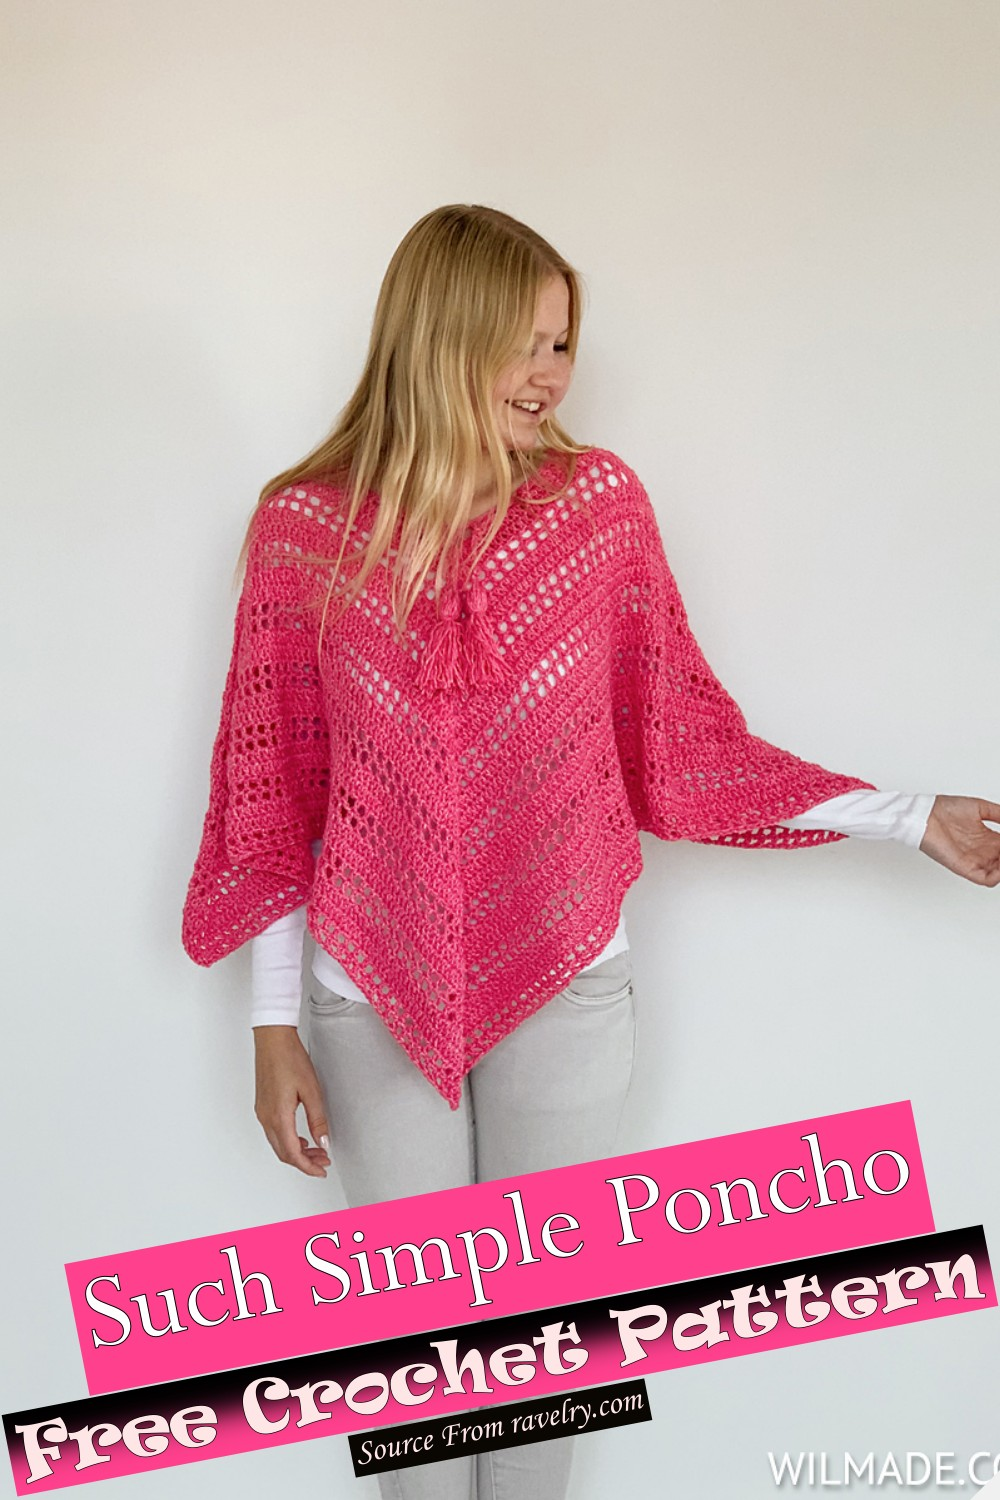 Free Crochet Such Simple Poncho